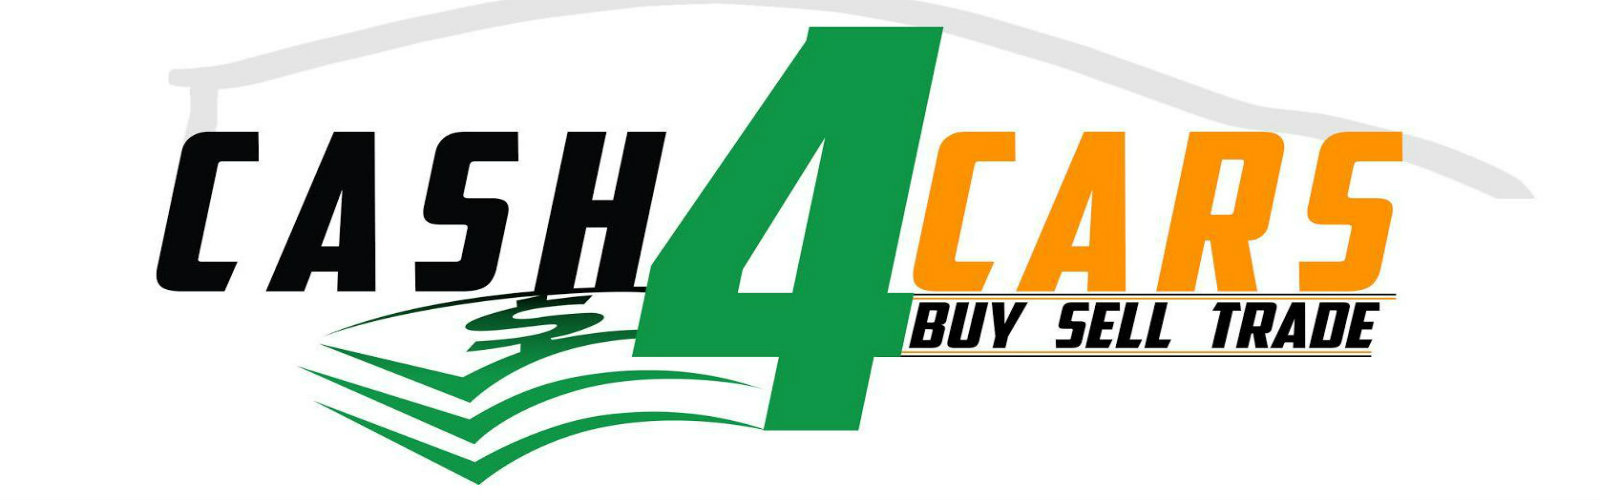 sell car for cash new zealand